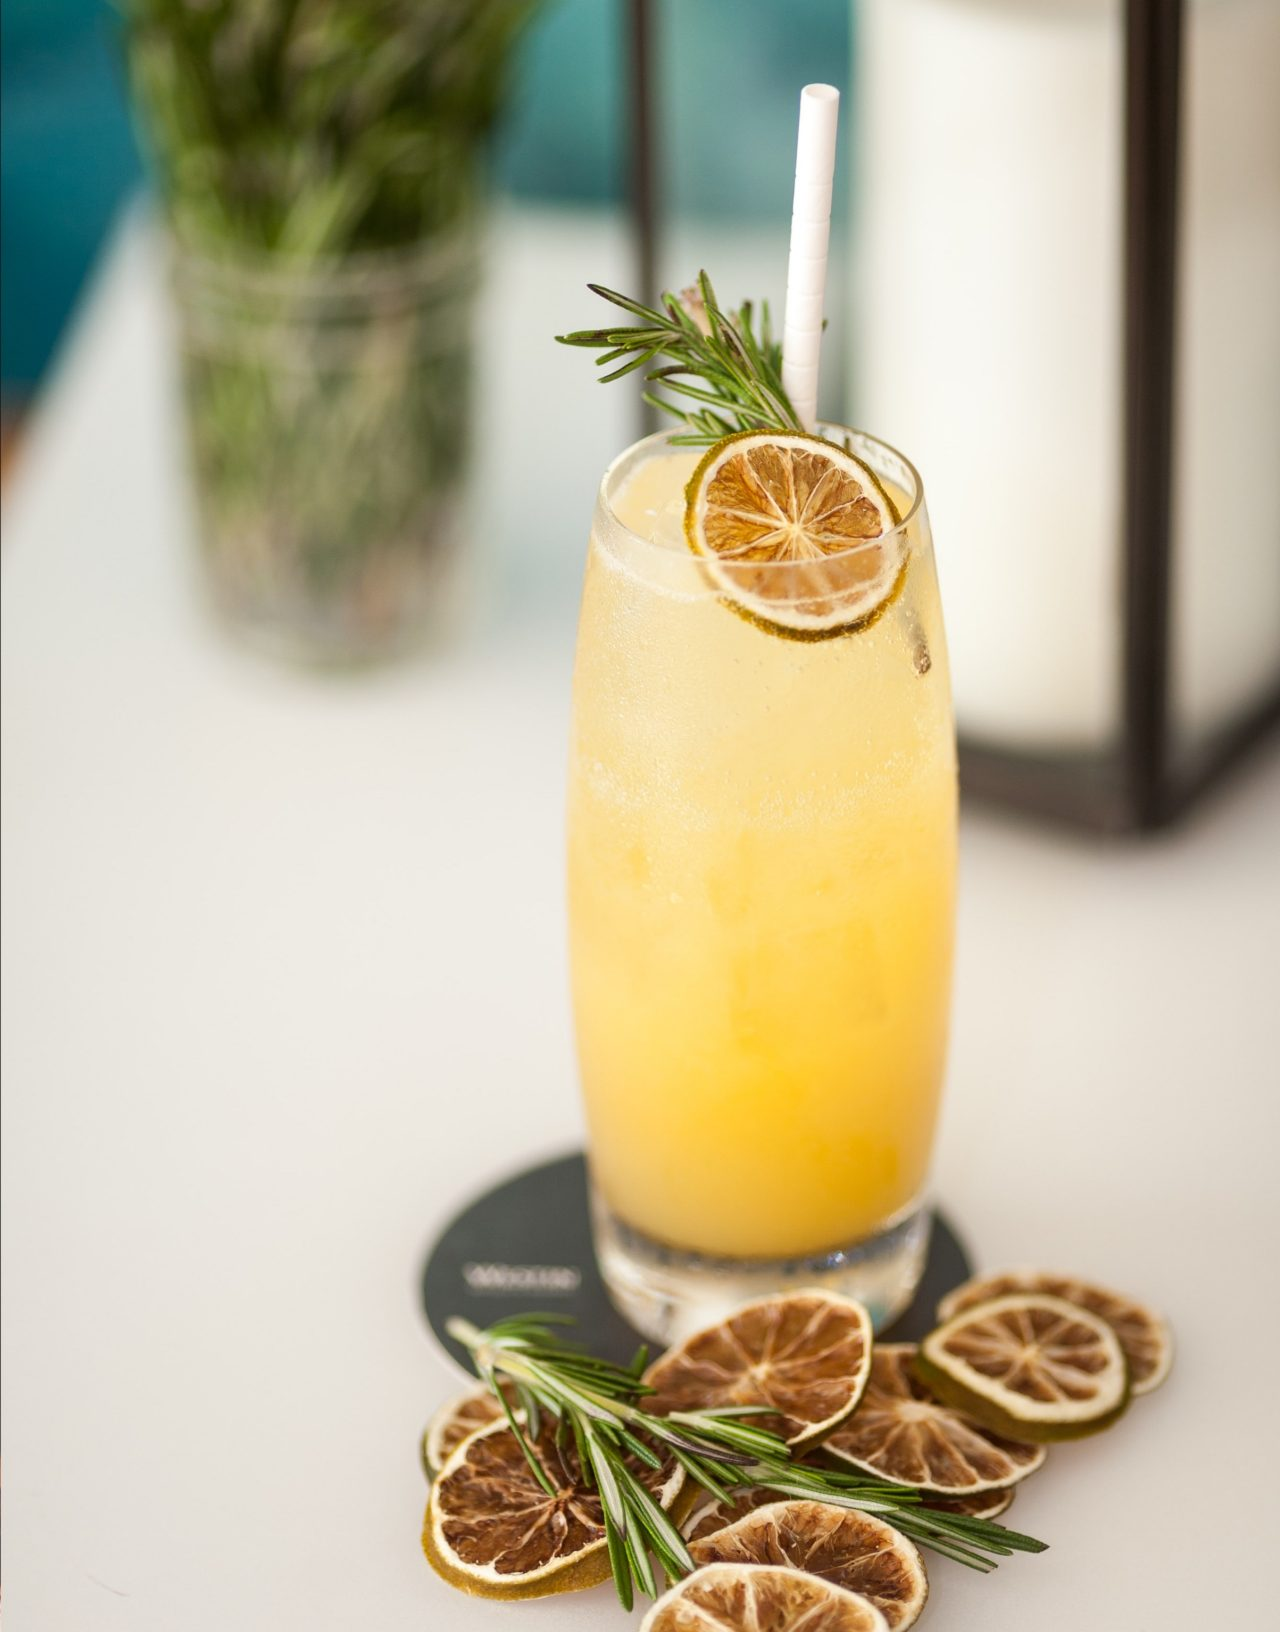 Yellow fruity cocktail with dried lemon garnish